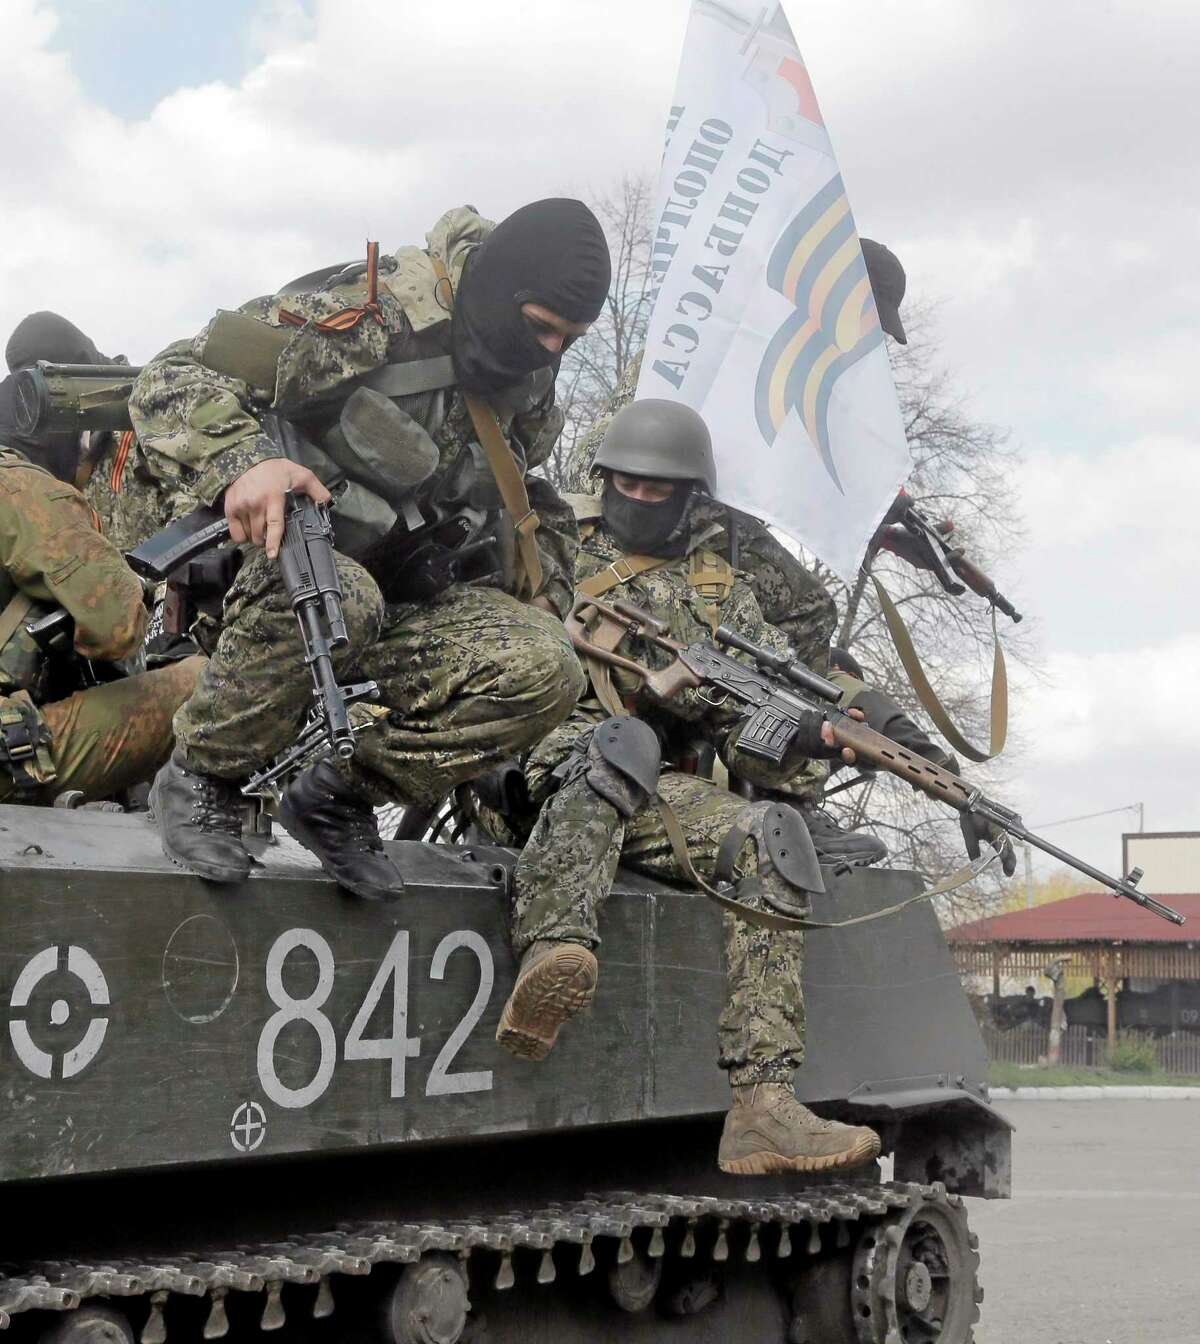 Pro-Russian gunman jump from a combat vehicle in downtown Slovyansk on Wednesday, April 16, 2014. The troops on those vehicles wore green camouflage uniforms, had automatic weapons and grenade launchers and at least one had the St. George ribbon attached to his uniform, which has become a symbol of the pro-Russian insurgency in eastern Ukraine. (AP Photo/Efrem Lukatsky)